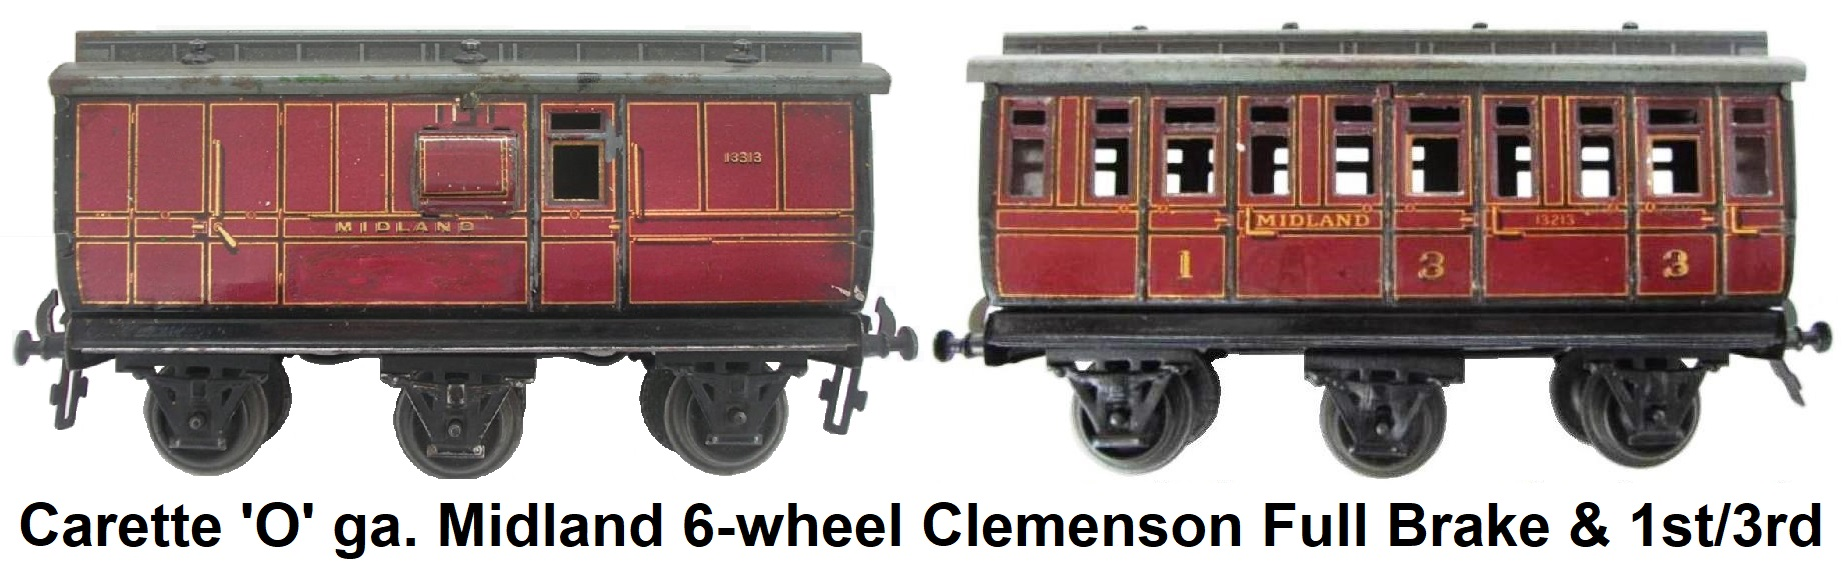 Carette 'O' gauge Midland 6 Wheeled Clemenson Style 6 wheel Clerestory Roof First Third Passenger Coach